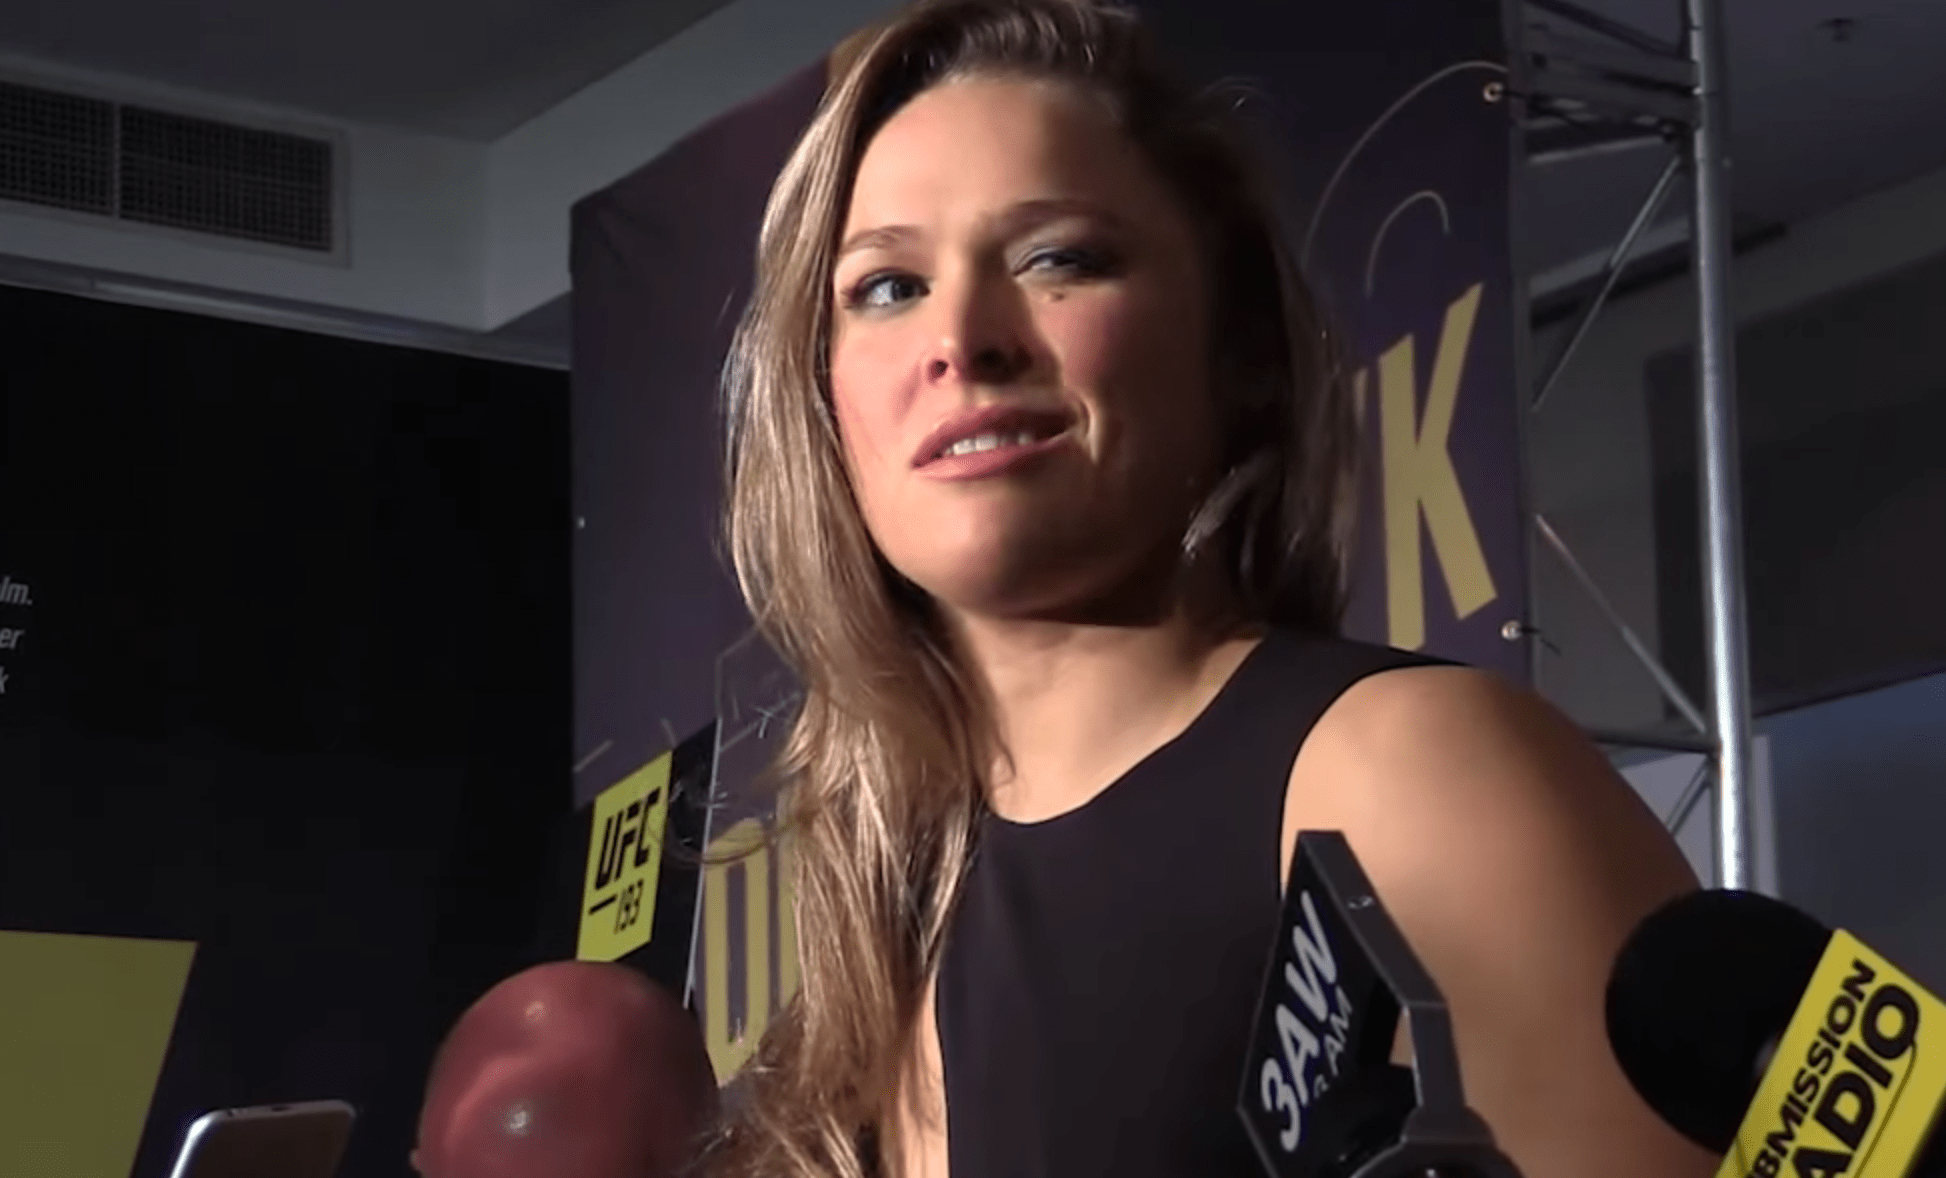 Ronda Rousey's coach on who he'd want her to fight next